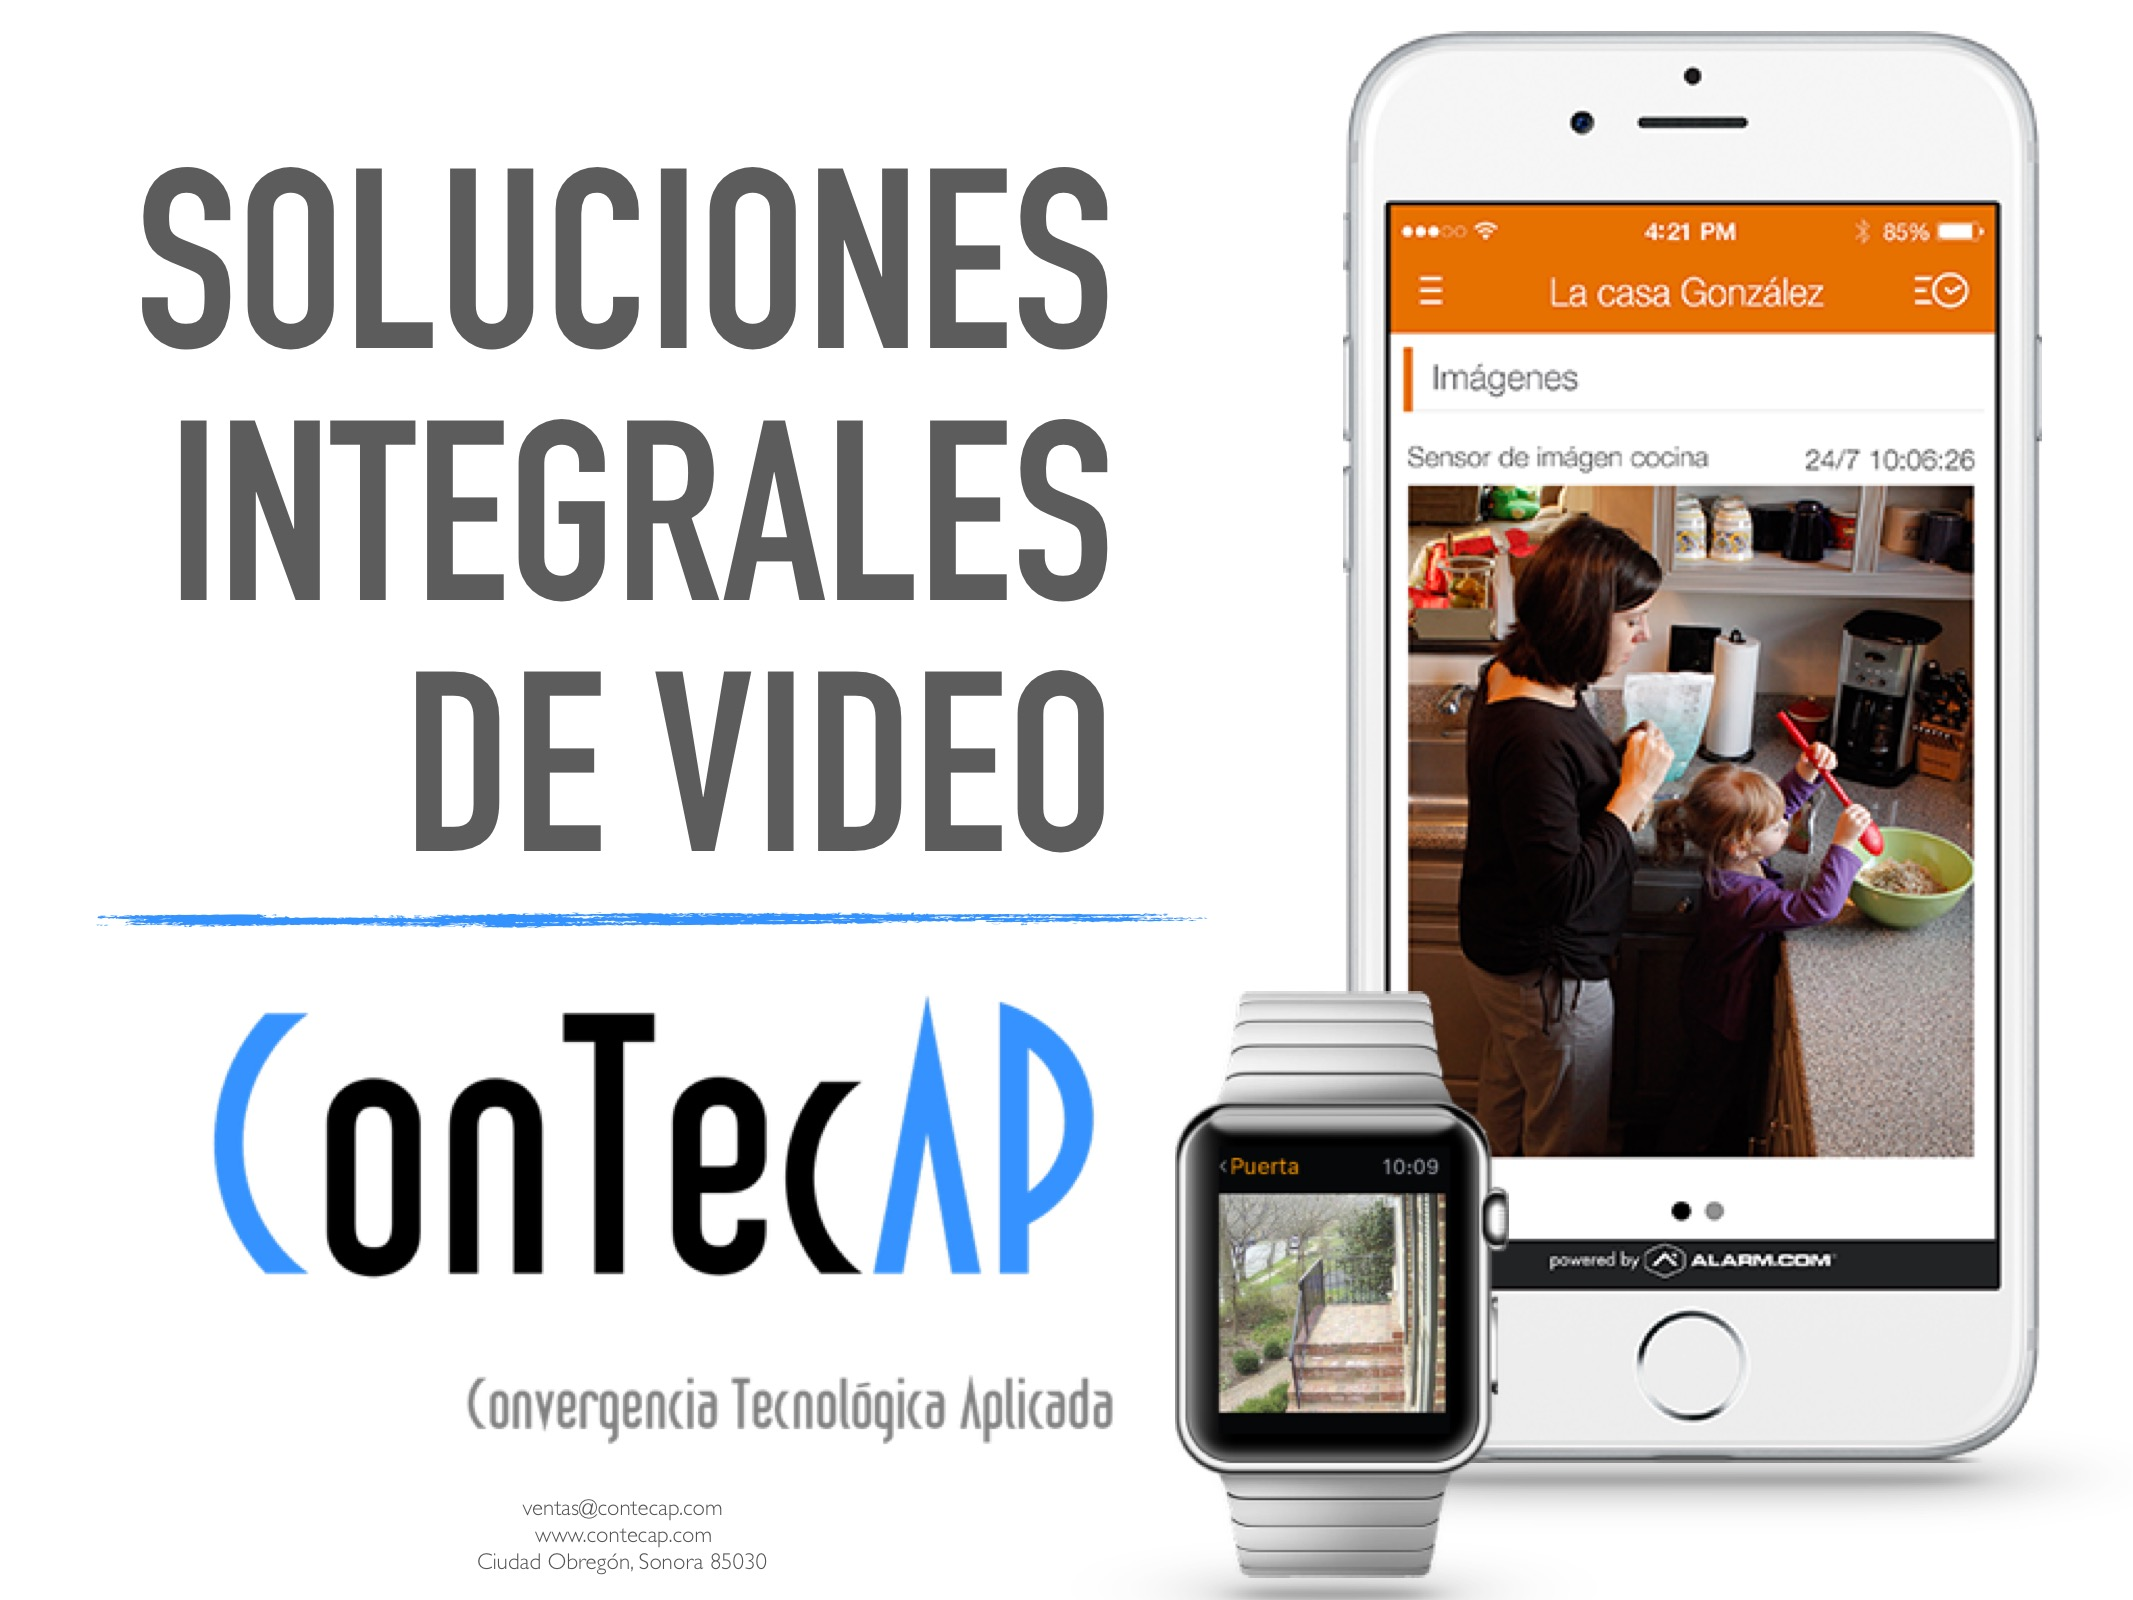 Soluciones Integrales de Video 1.jpeg